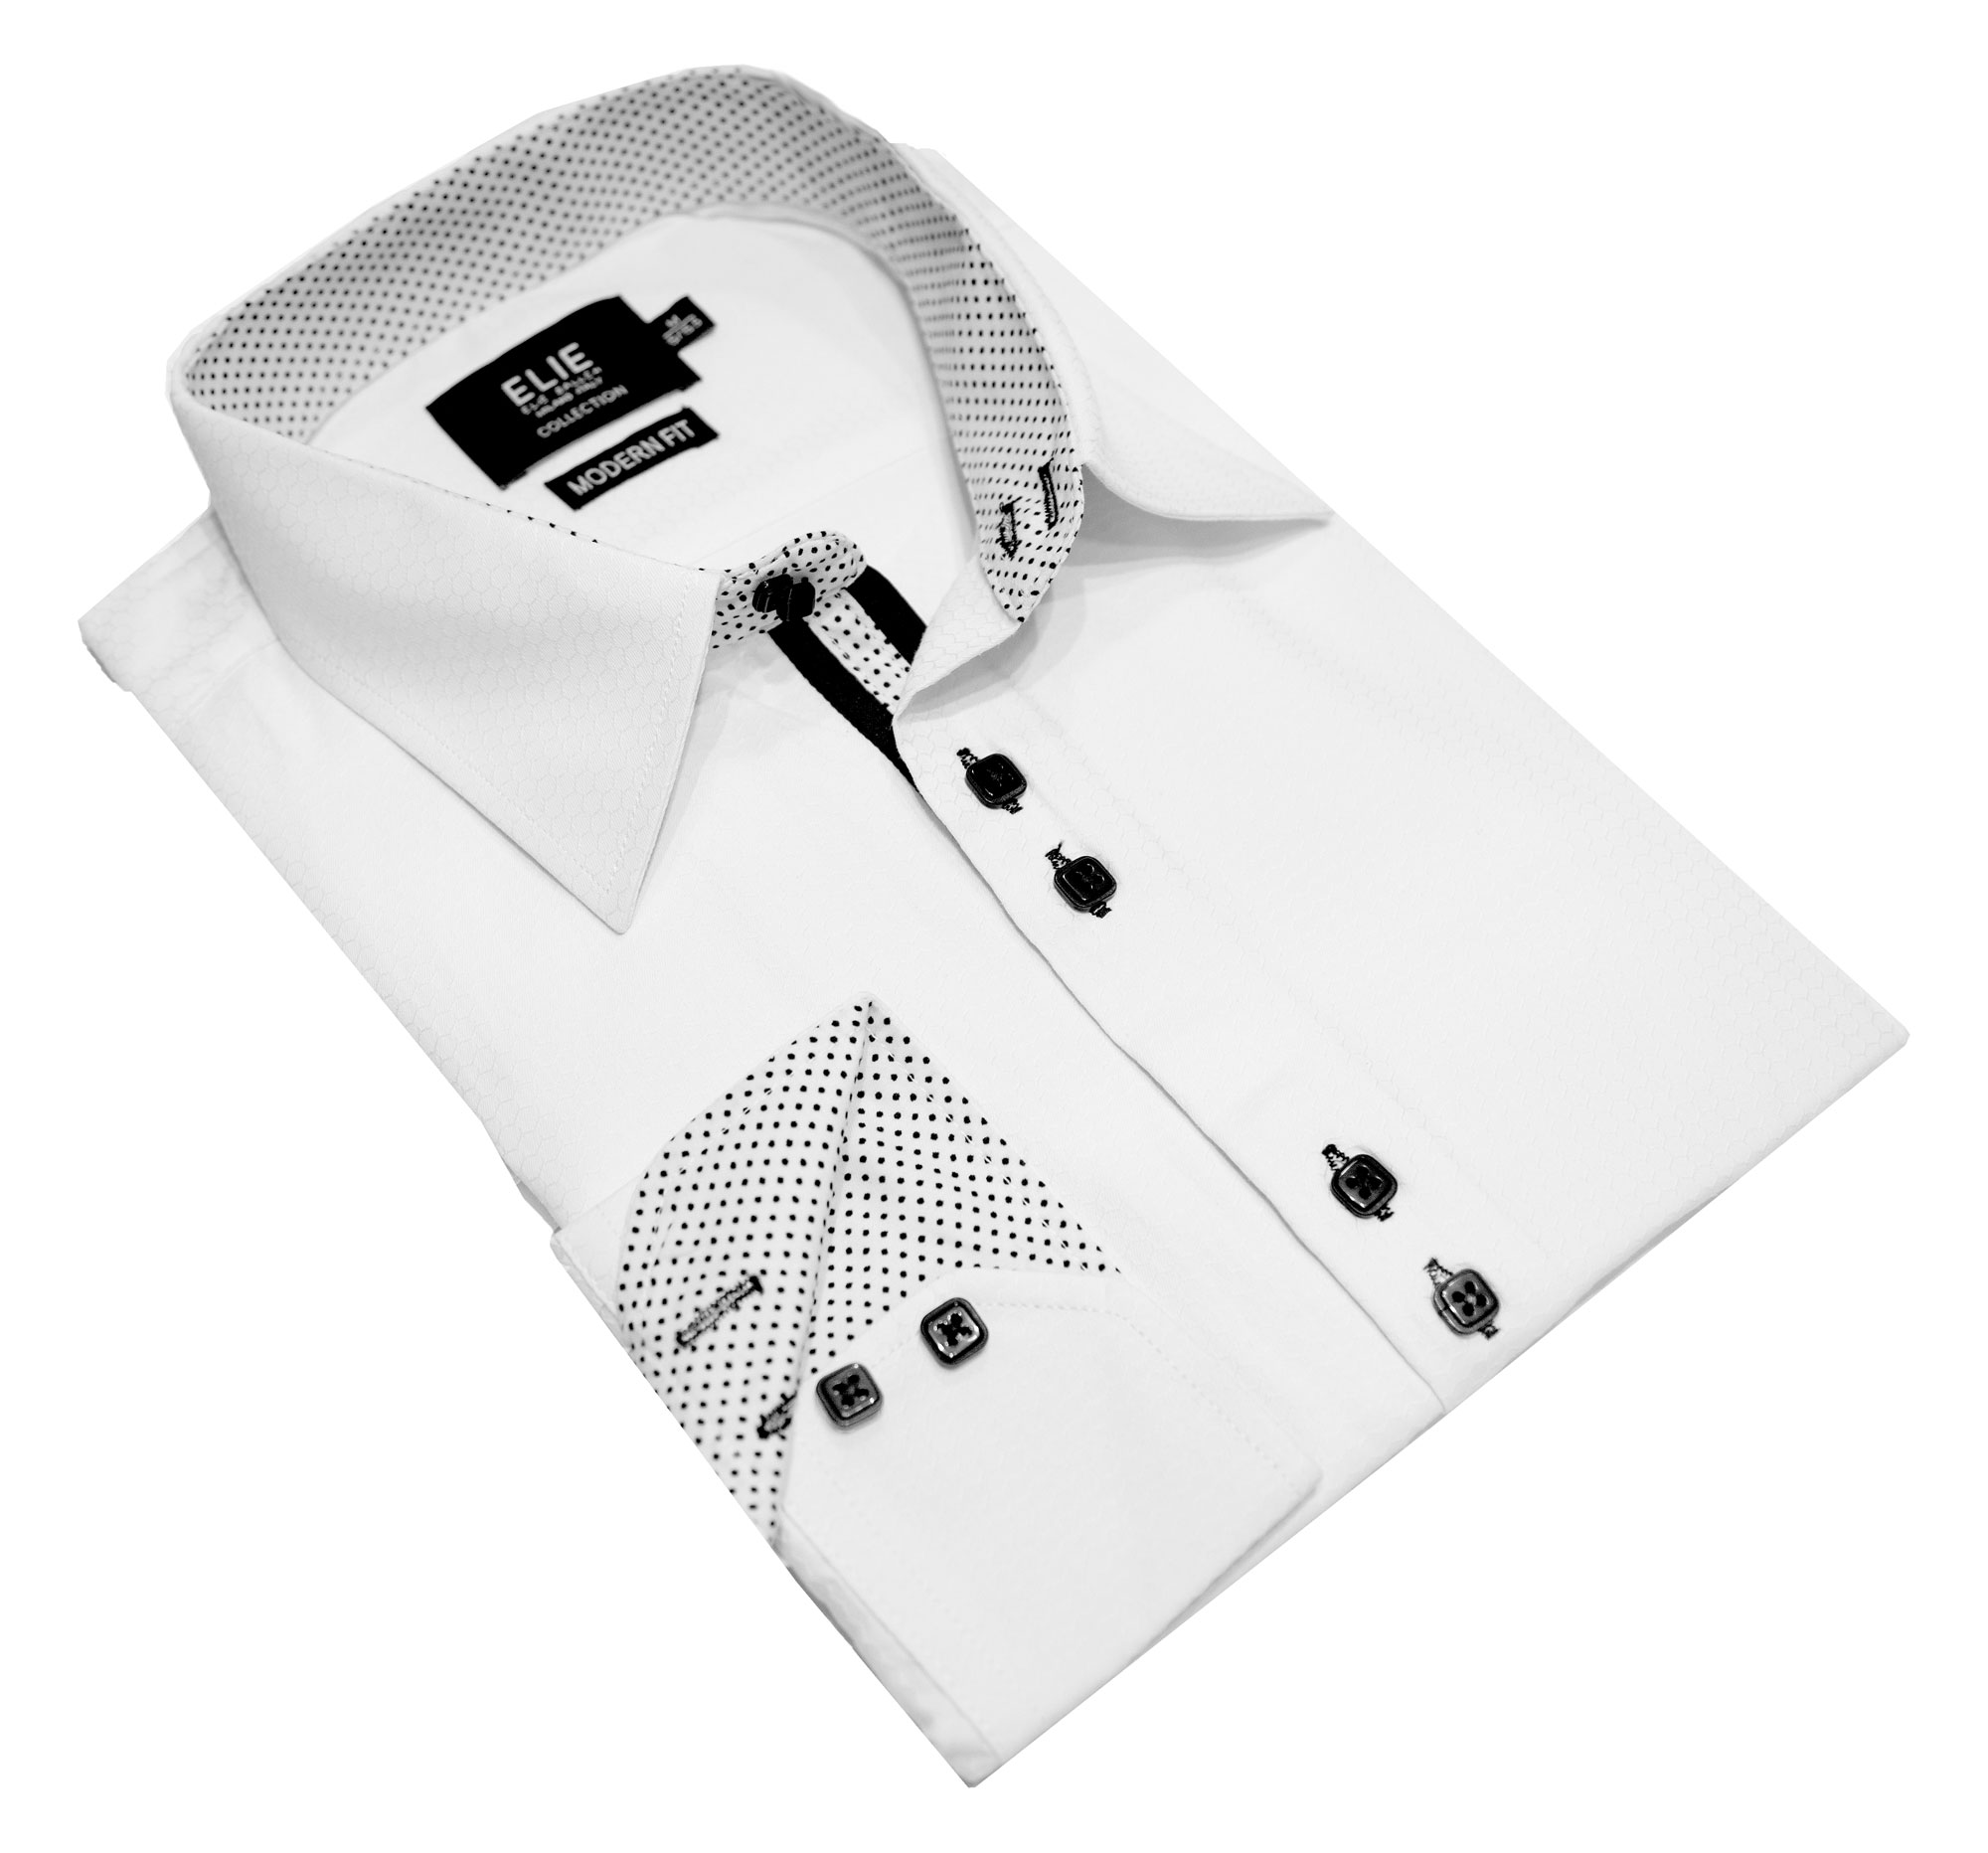 Solid Hexagon Men's Shirts/Button Down CEBSH319M